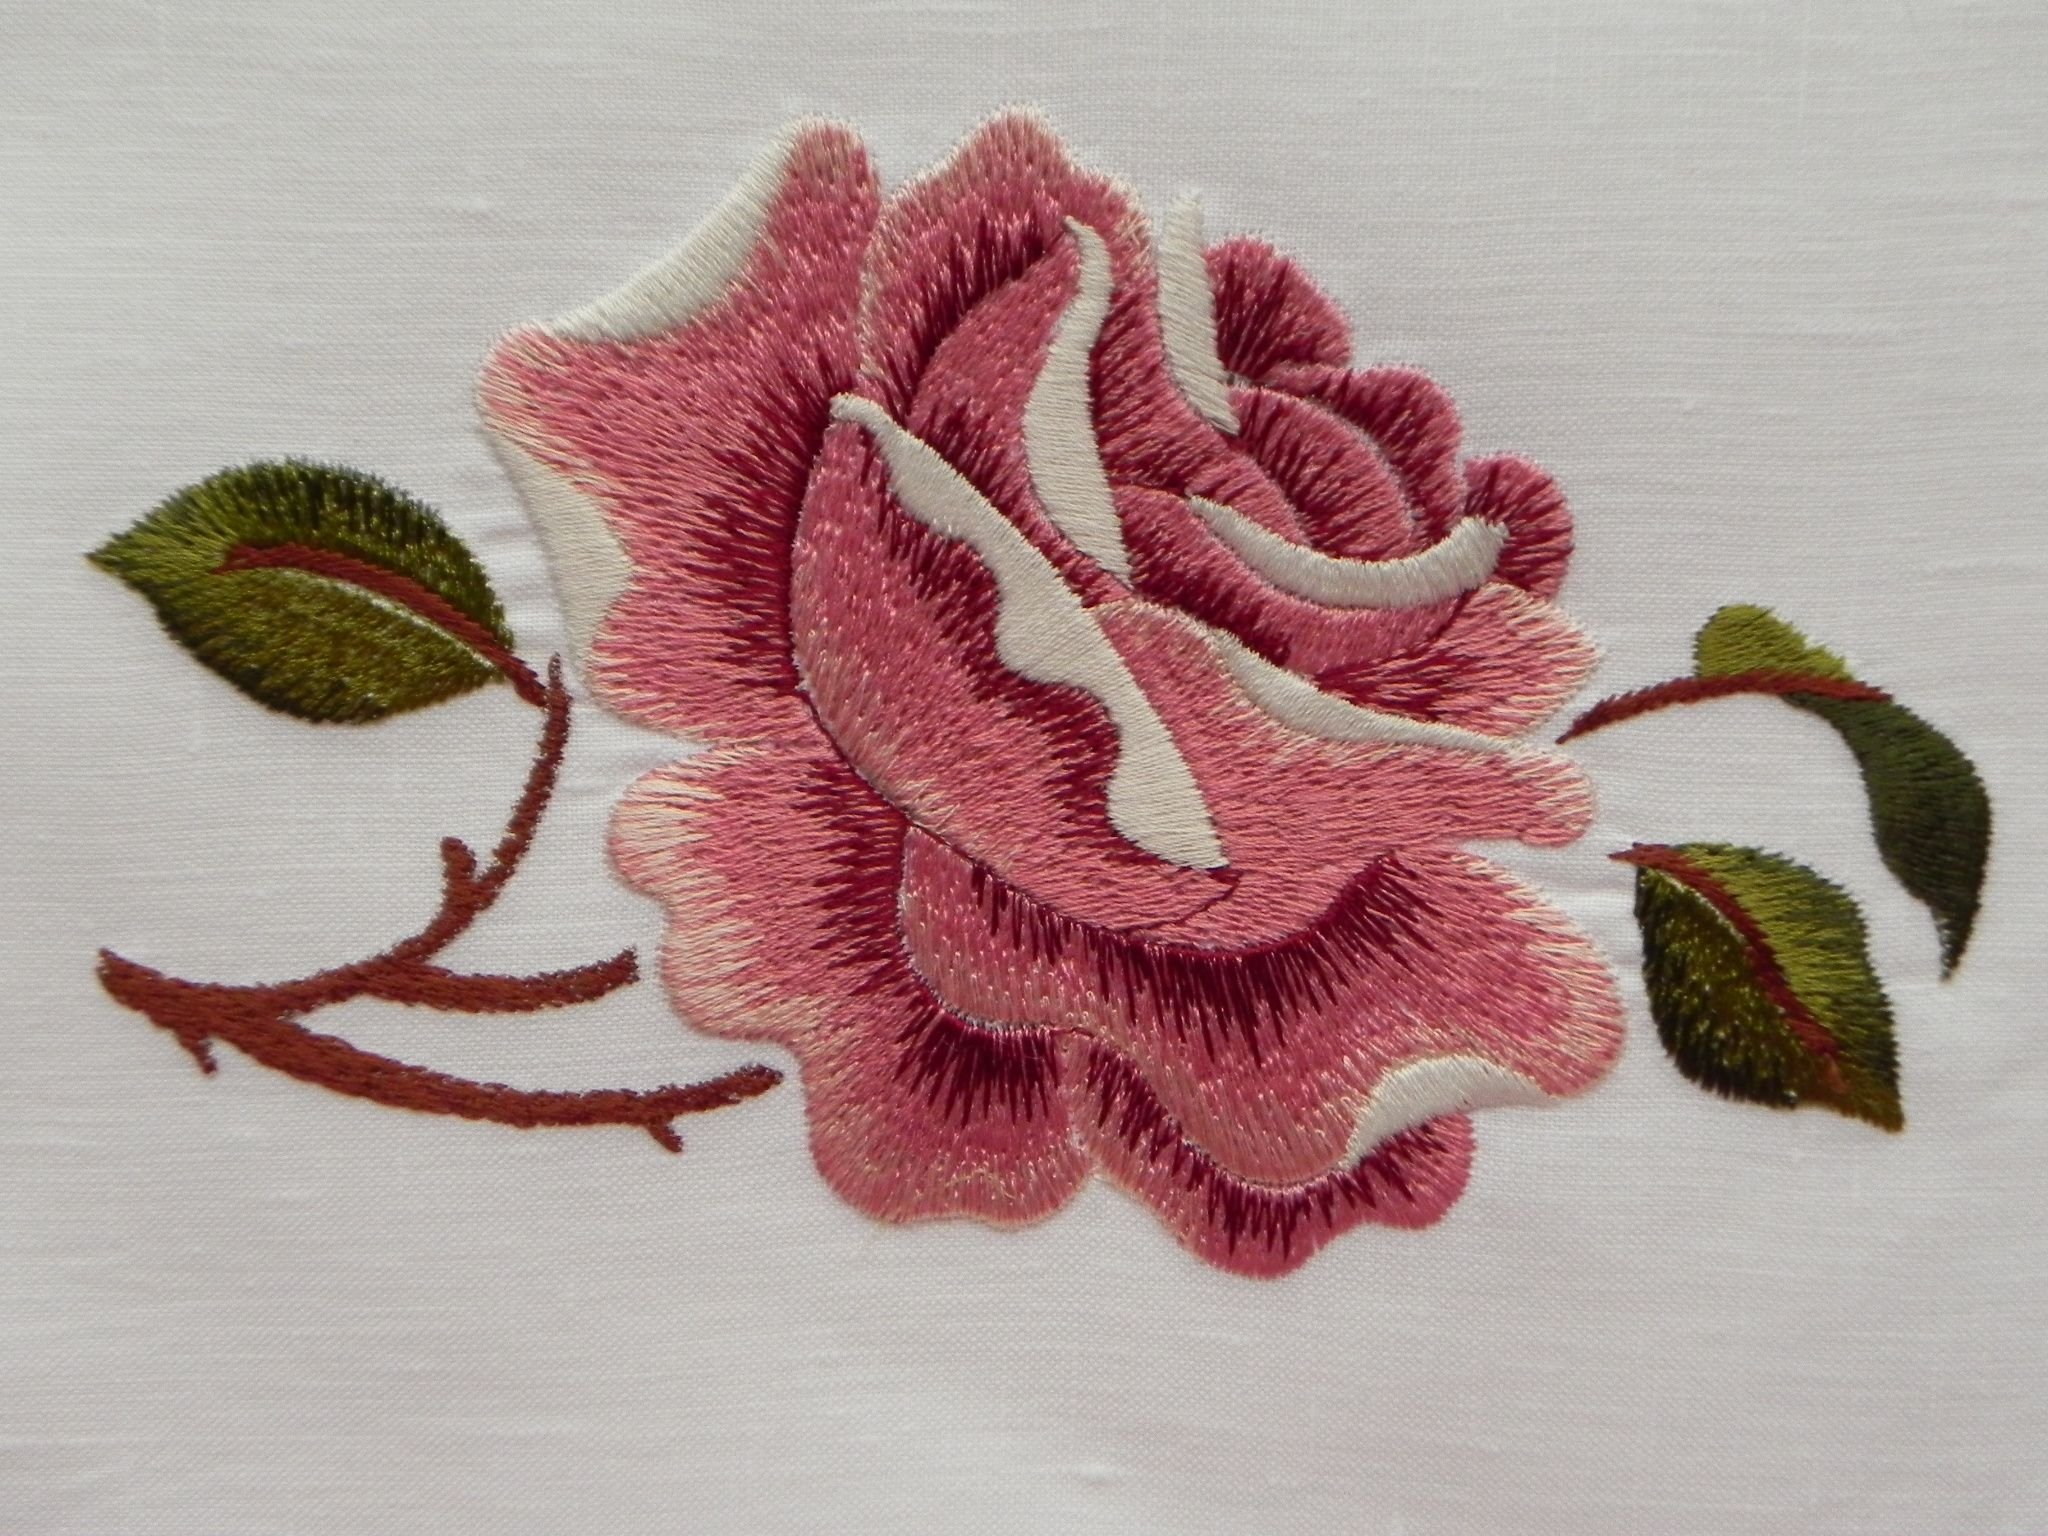 Machine Embroidery Satin Stitch Rose Embroidery Pinterest